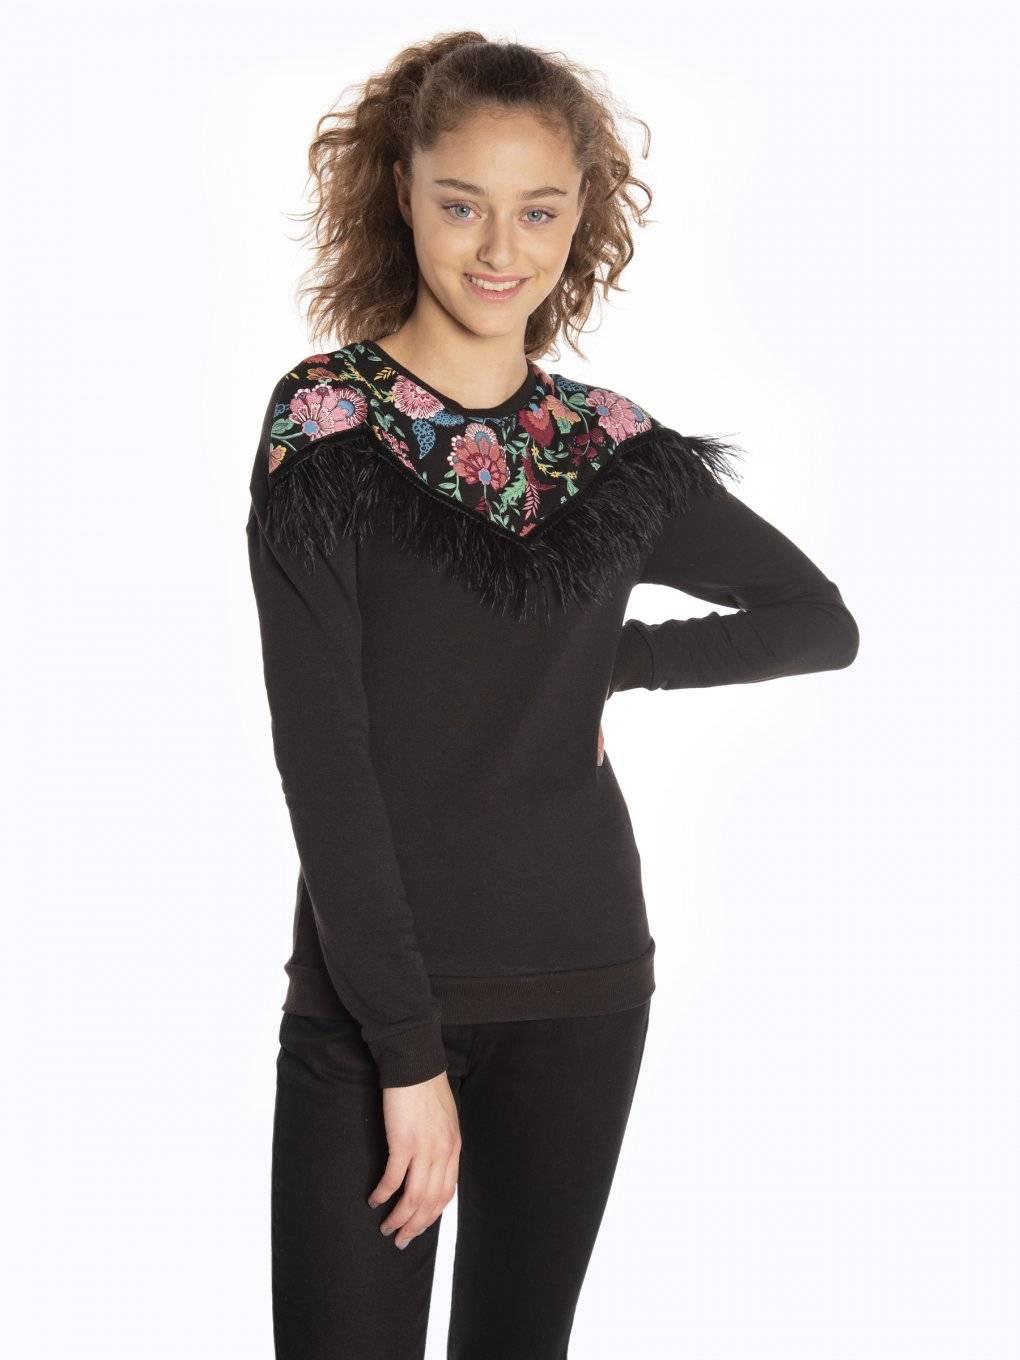 Sweatshirt with floral print and feathers